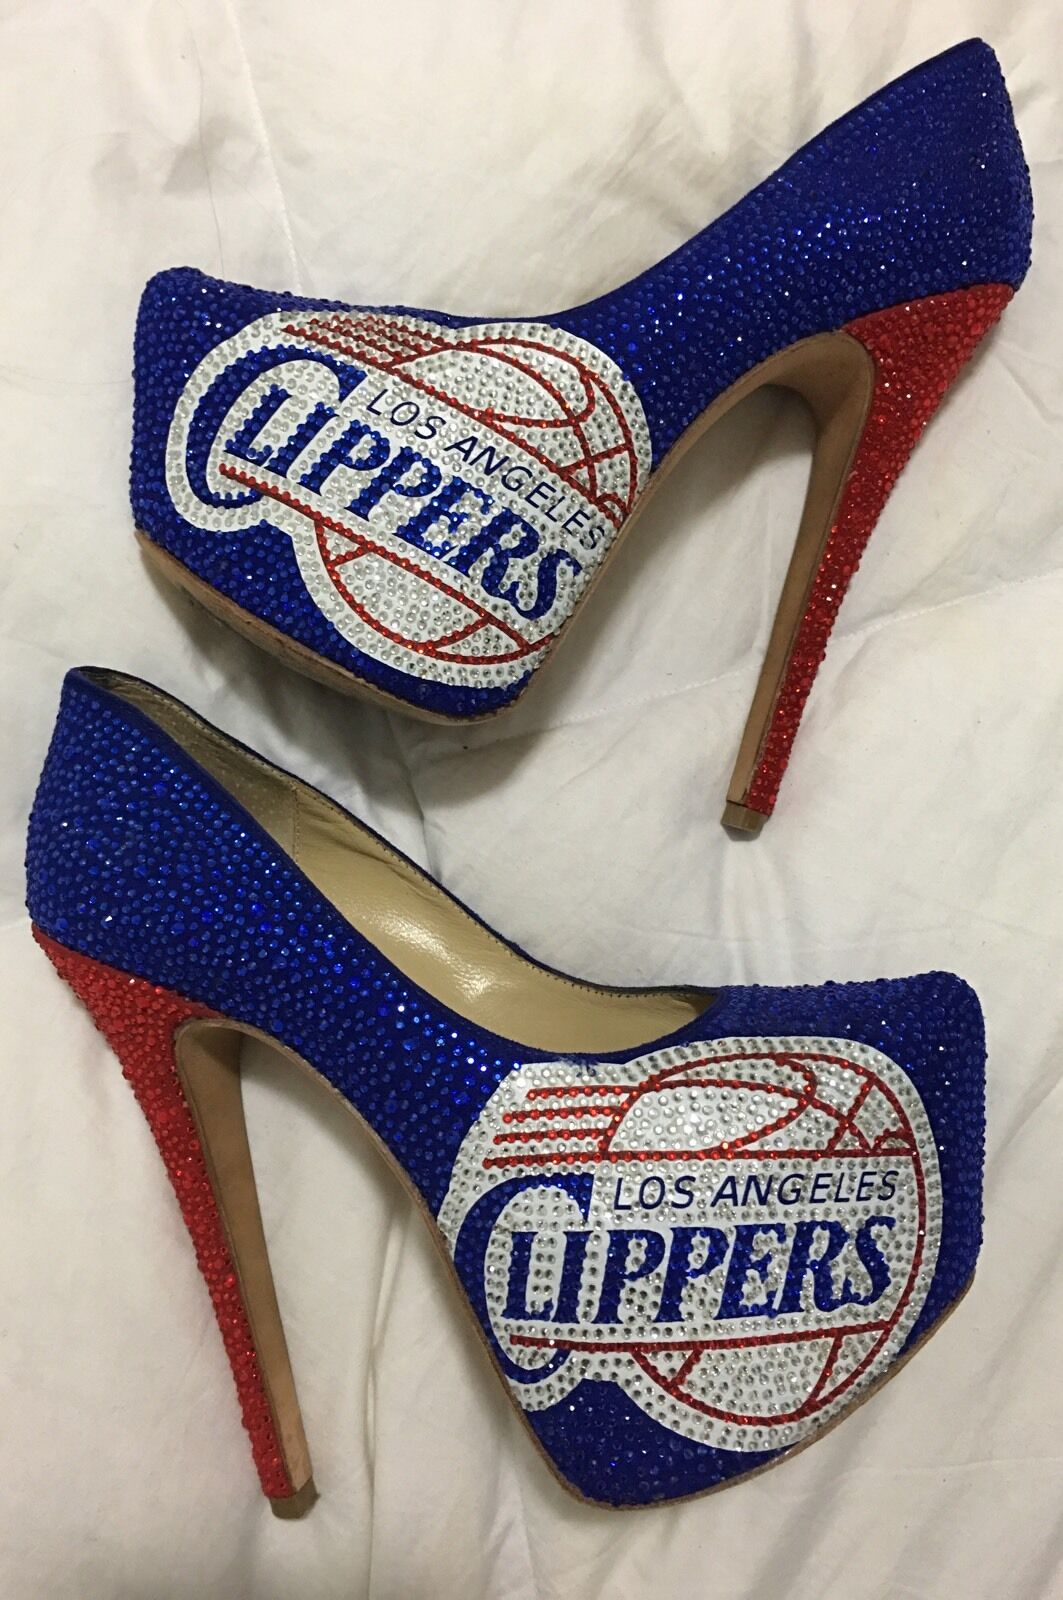 all'ingrosso a buon mercato LA LA LA Clippers Los Angeles NBA Herstar Crystal Strass Limited Edition Pumps Heels 8  merce di alta qualità e servizio conveniente e onesto